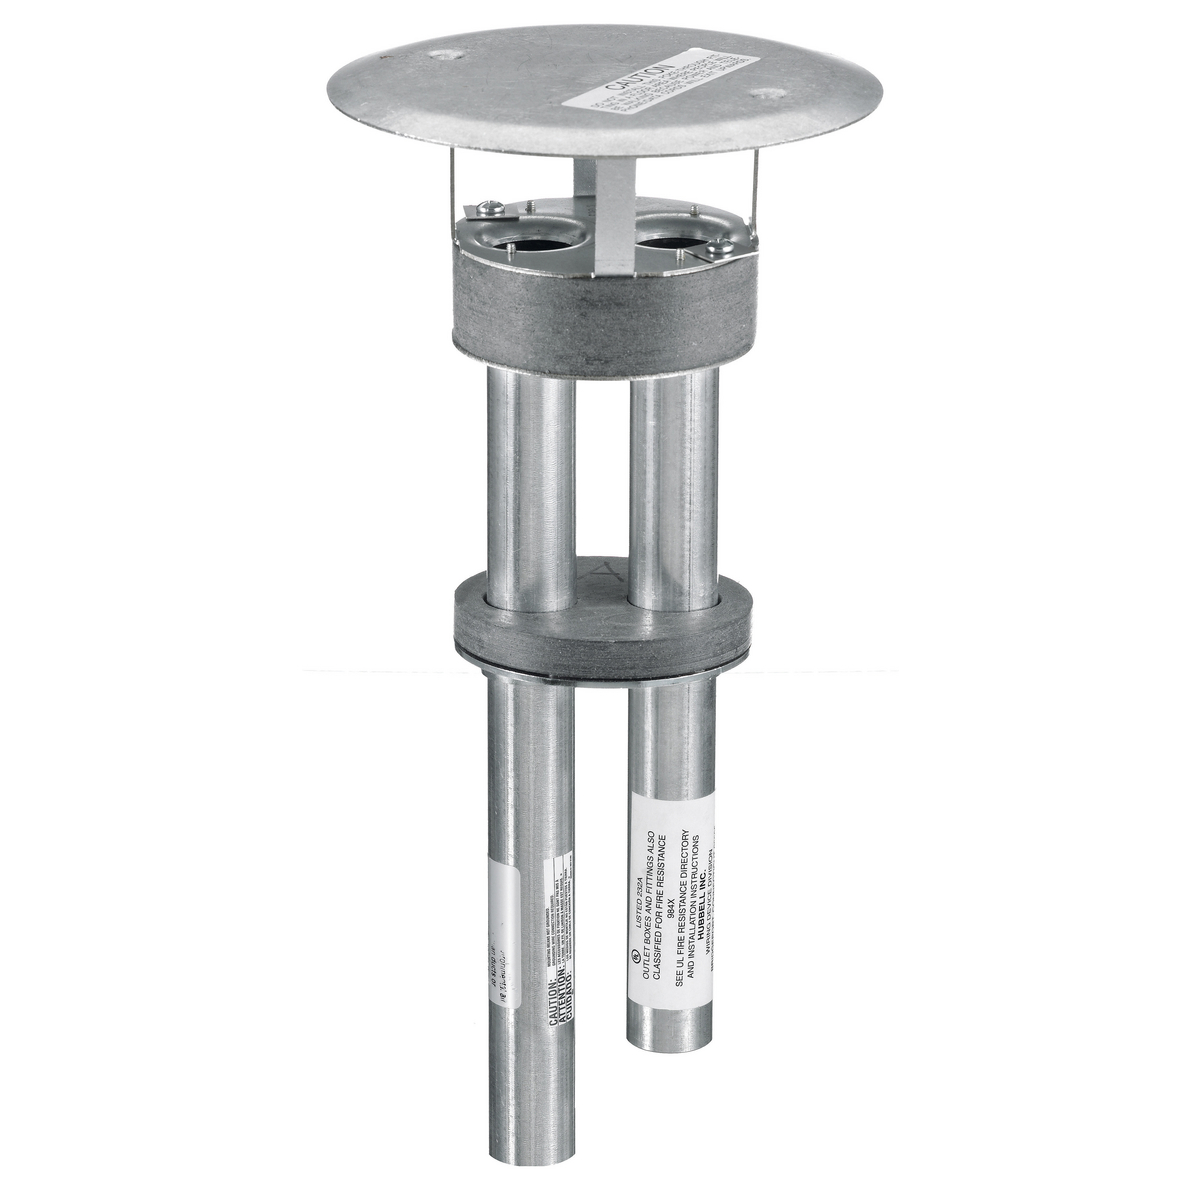 Hubbell Wiring Device Kellems, In-Floor Delivery Systems, SystemOneThrough-Floor Fitting, 4x4, Dual Channel